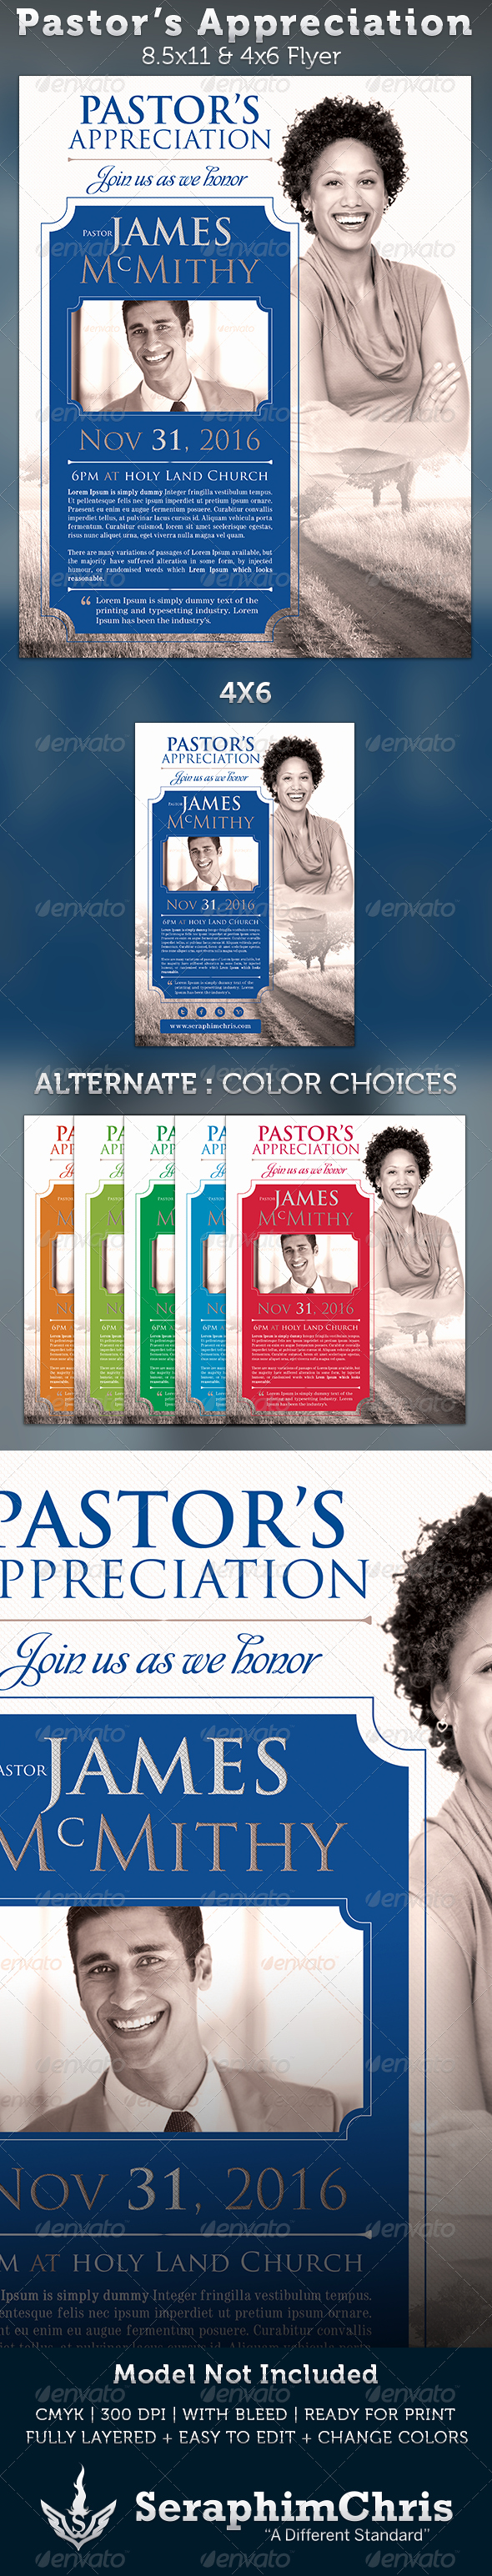 Pastor Appreciation Day Program Template Beautiful Pastor S Appreciation Church Flyer Template $6 00